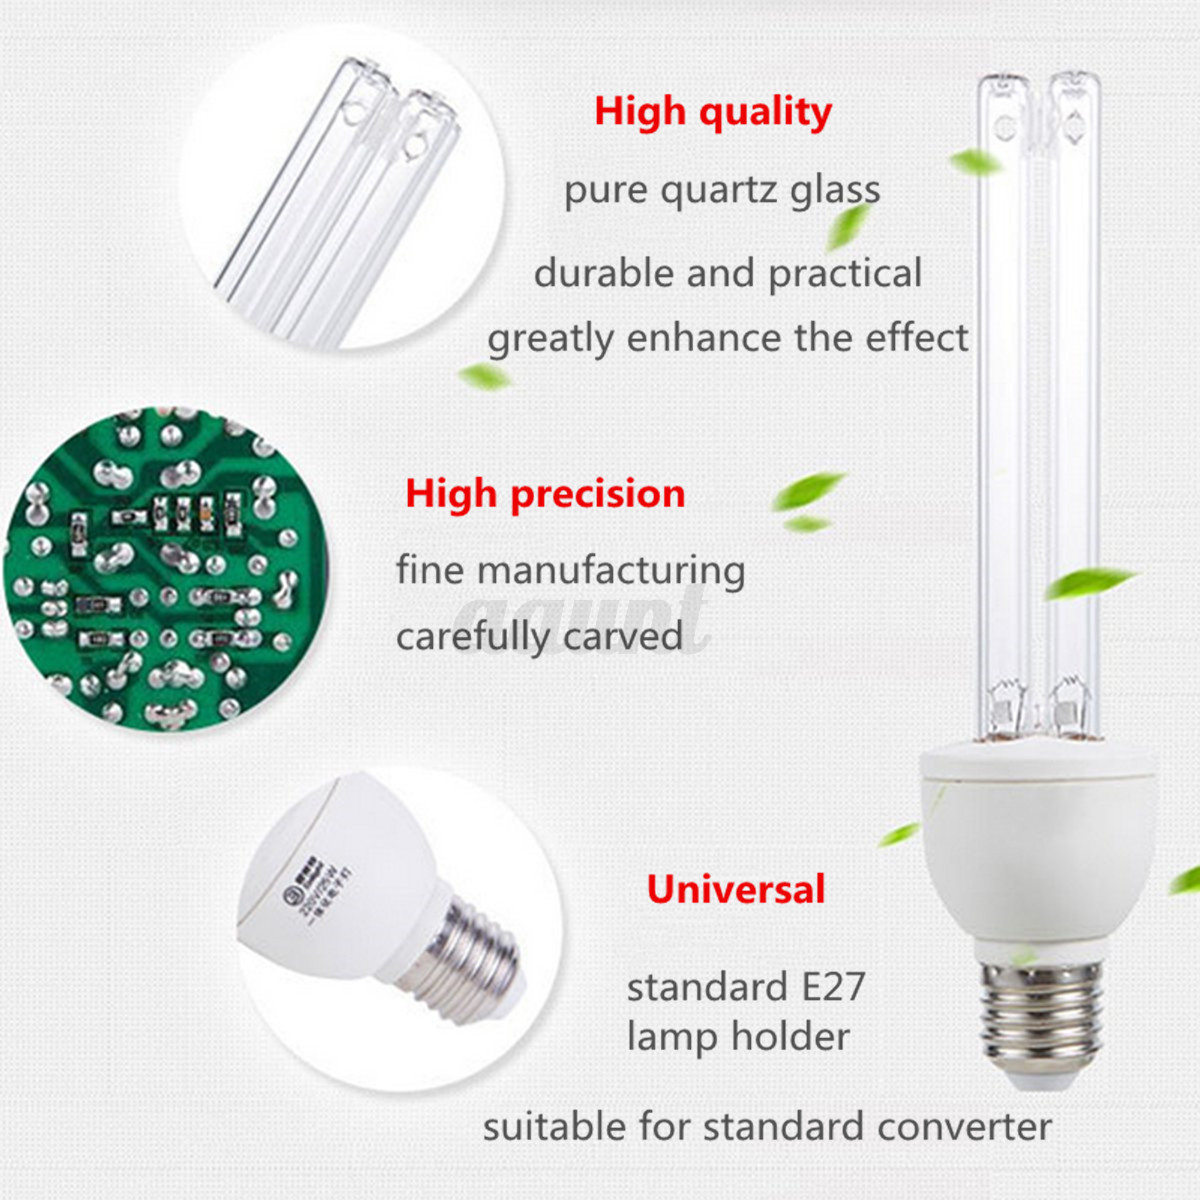 20W Ultraviolet Disinfection Lamp 220V E27 UVC Ozone Sterilization ...